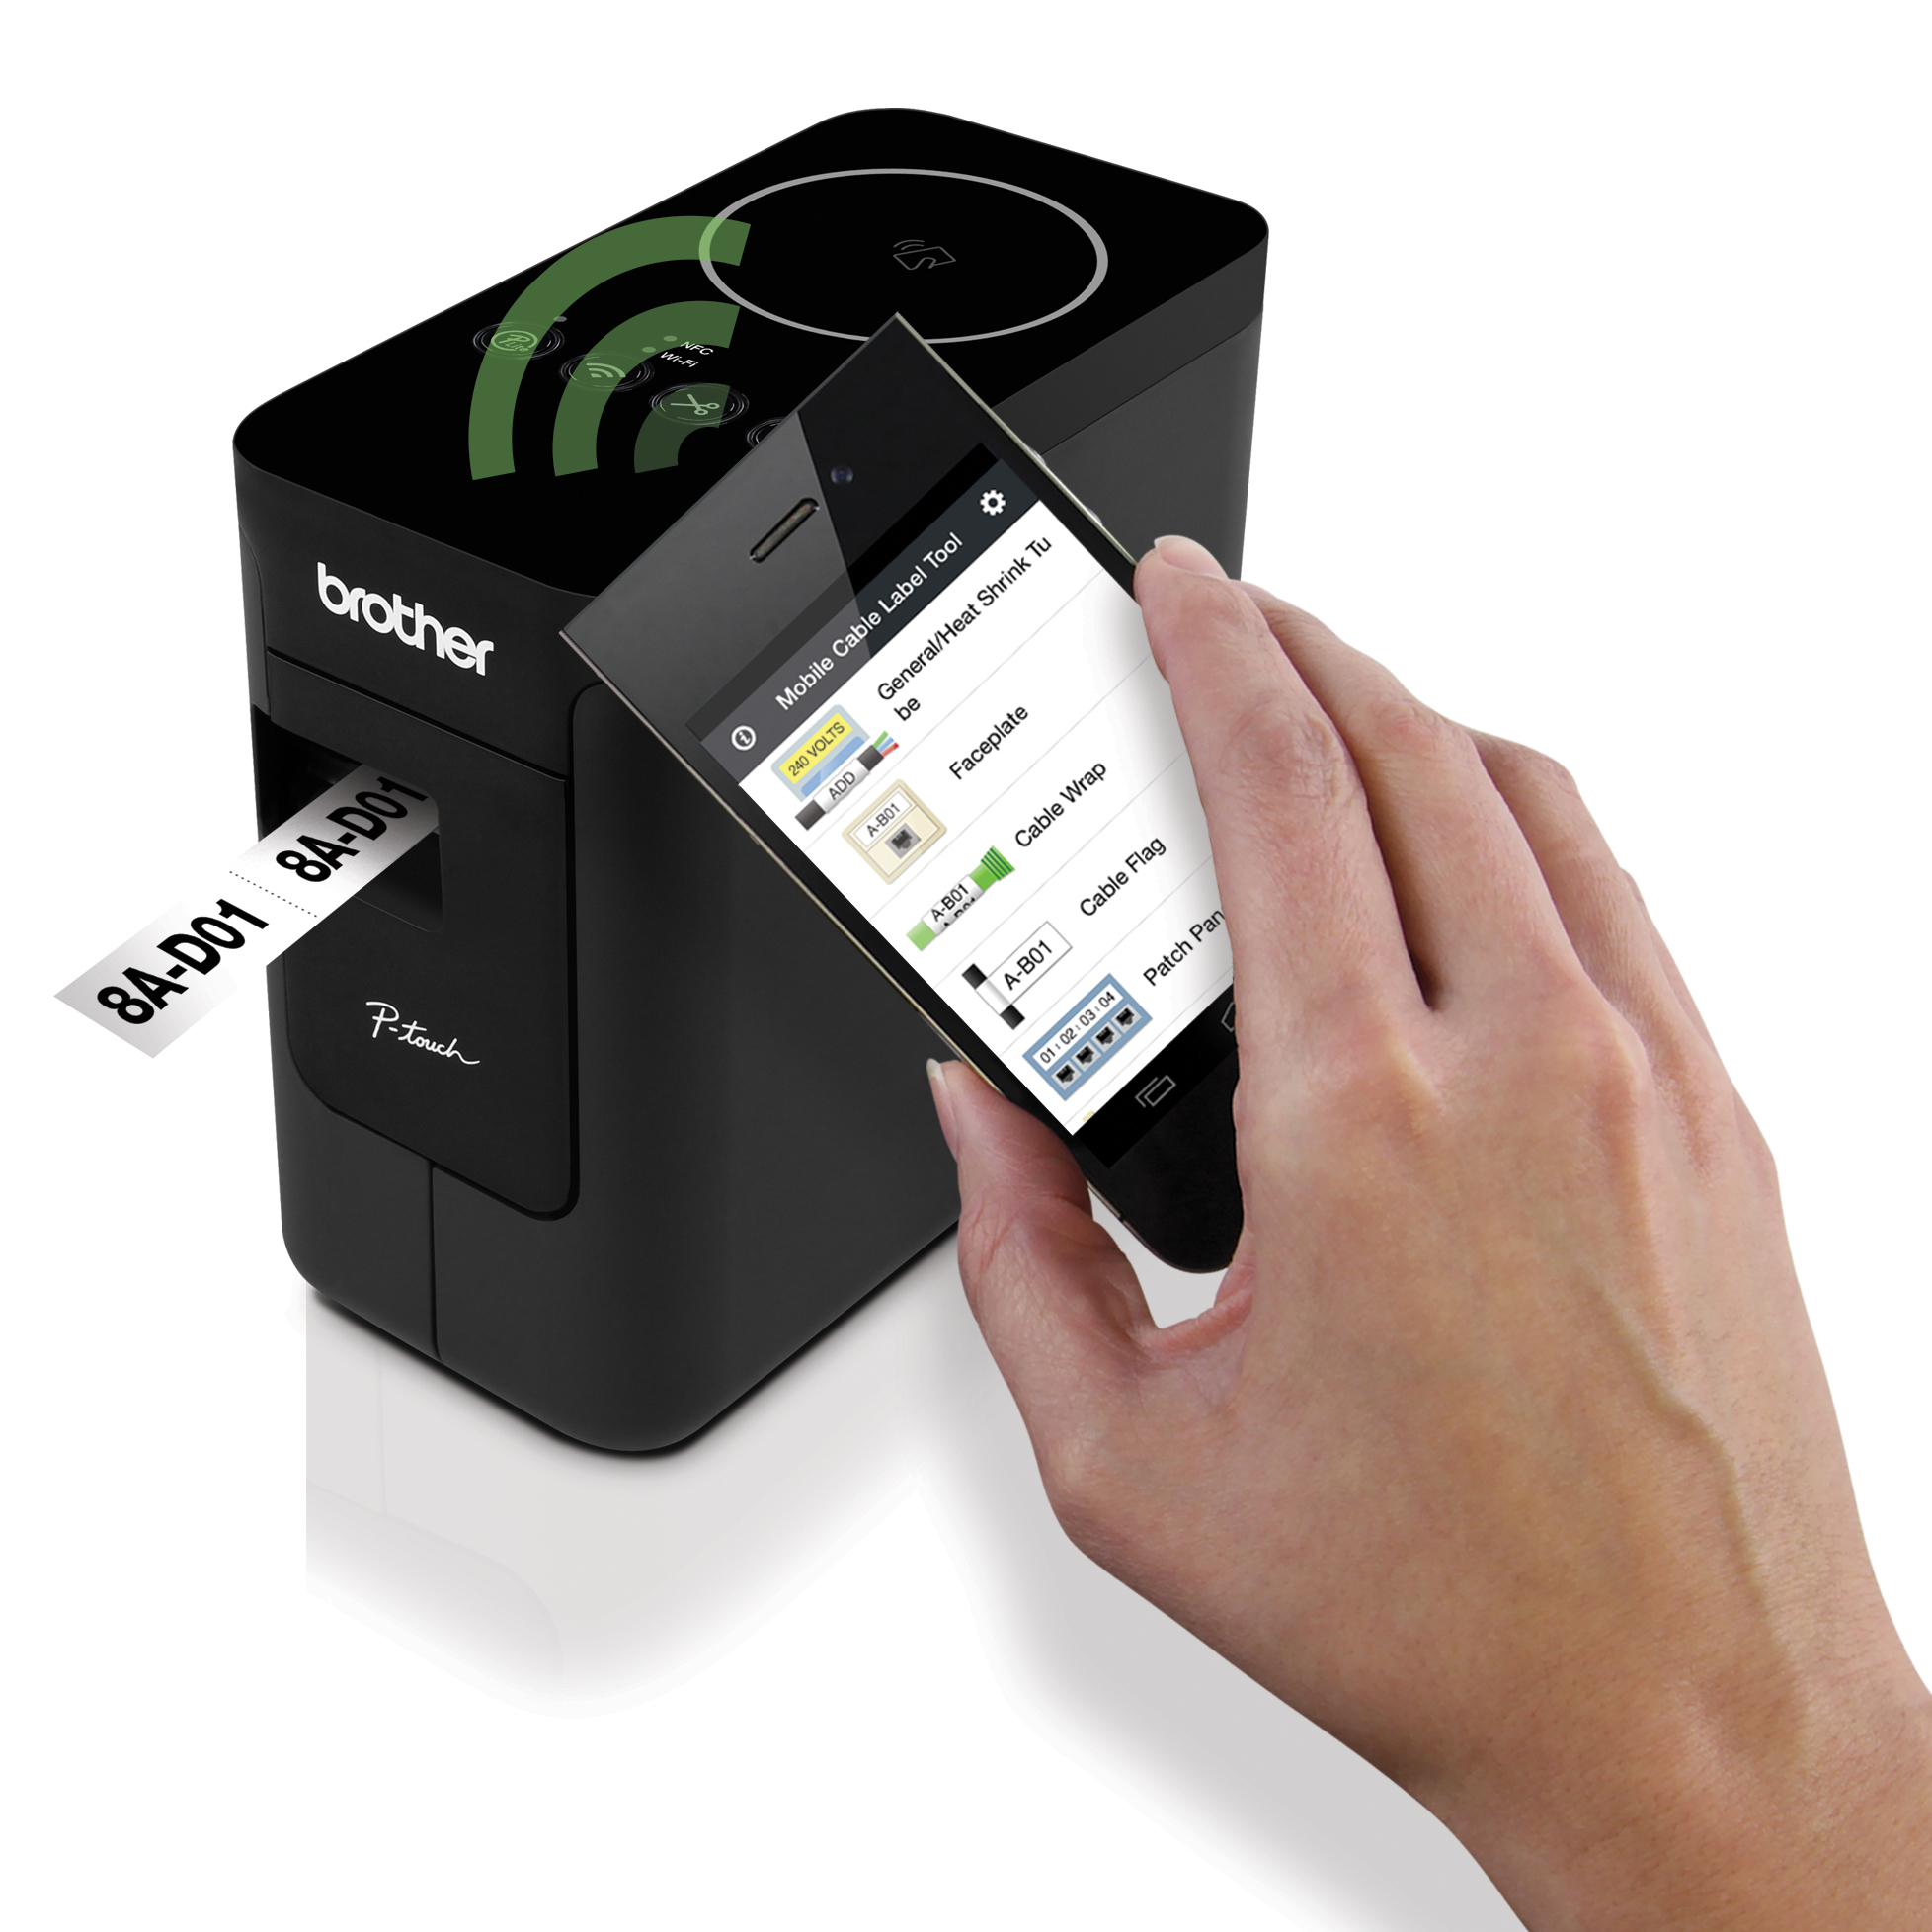 Brother Announces New P Touch EDGER Industrial Label Printer With Mobile App For Wireless Jobsite Printing